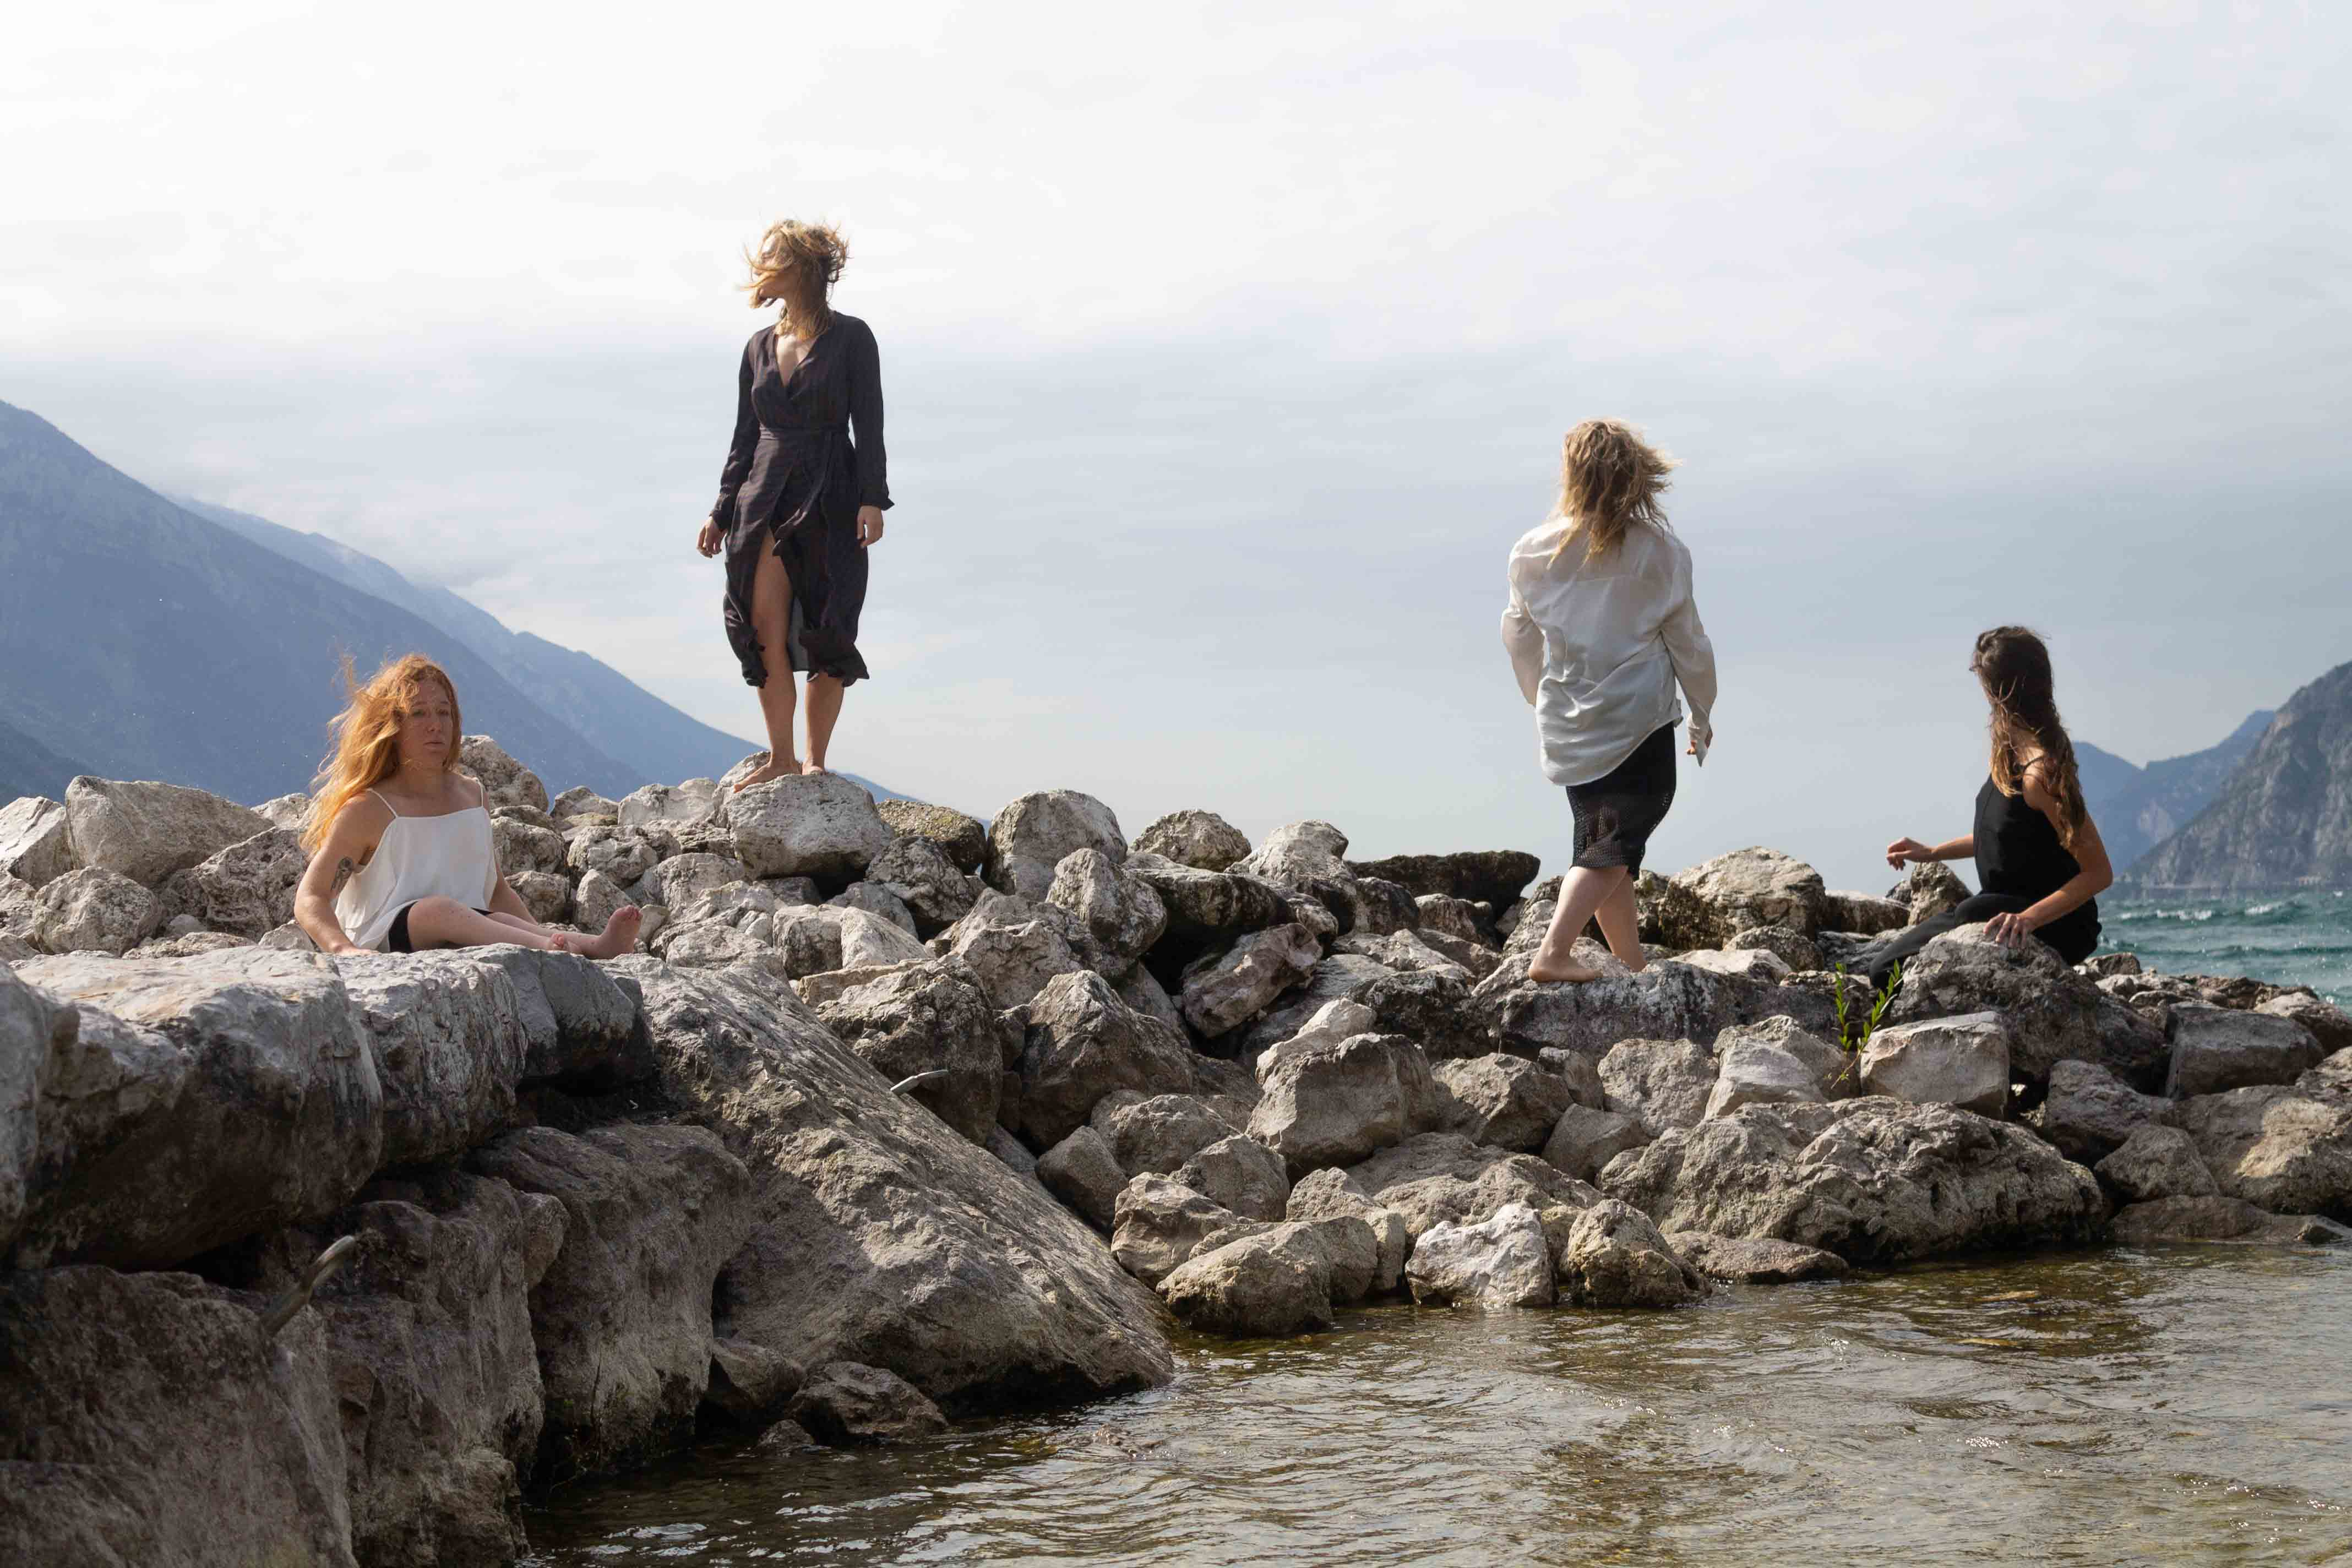 The image depicts four dancers wearing billowing clothes, standing and sitting on a pile of rocks at Lake Garda in northern Italy. In the background we see mountains sloping towards the lake. Photo: Federico Gazza